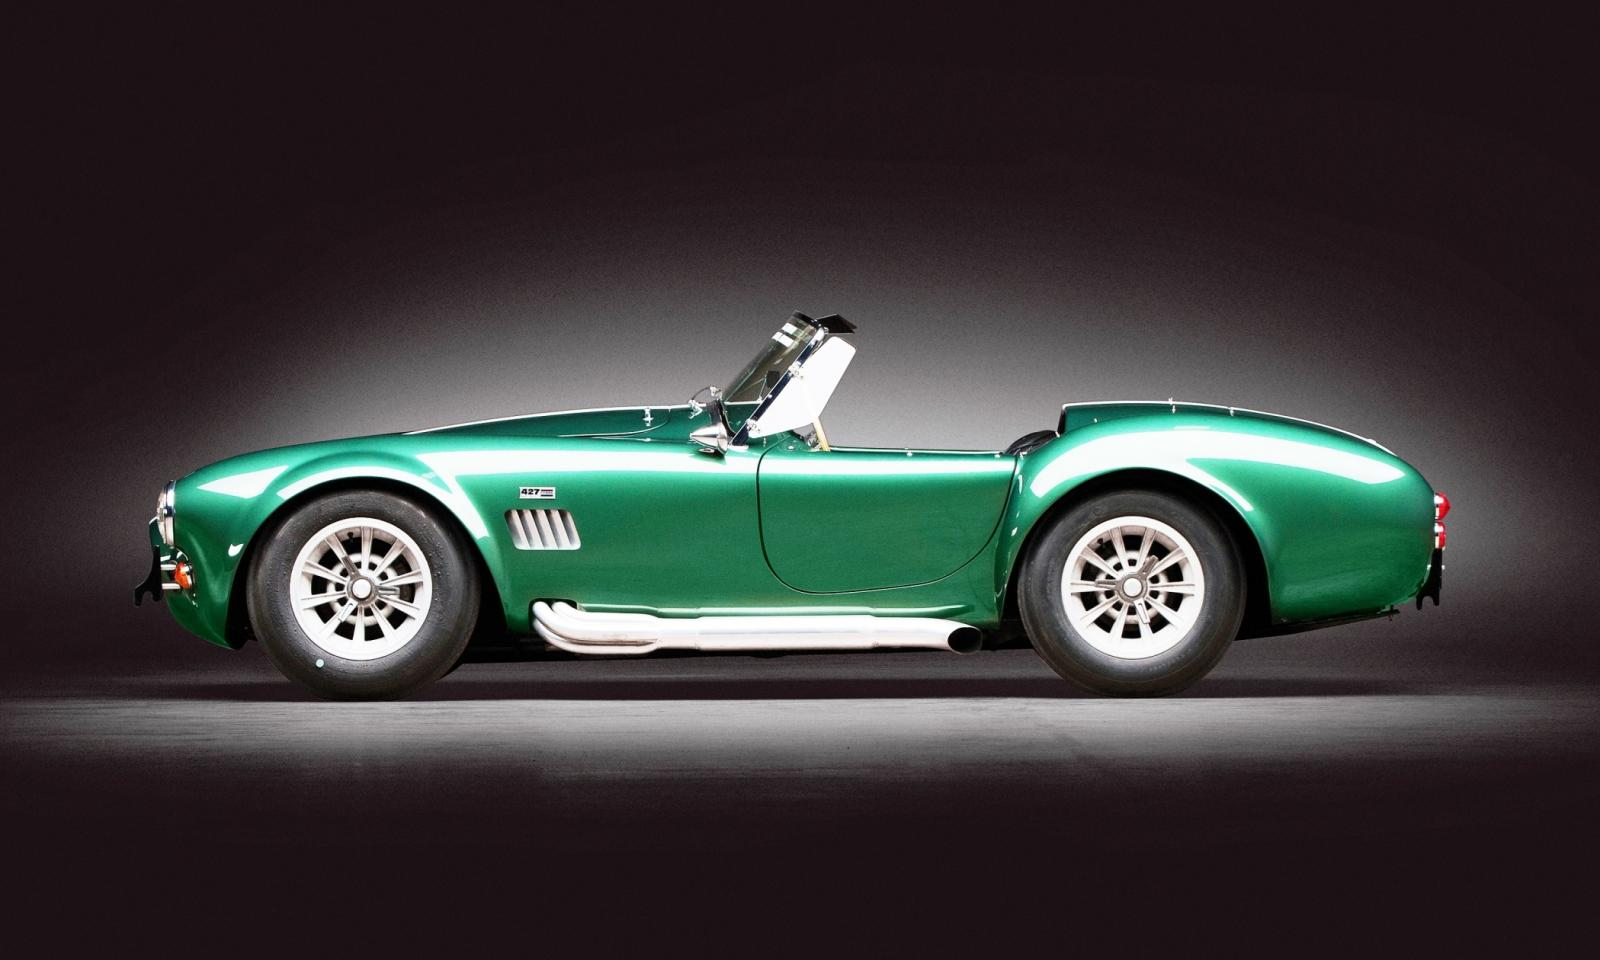 Rm Dallas Preview - ORIGINAL 1967 Shelby 427 Cobra Estimated at $1MM+ 5